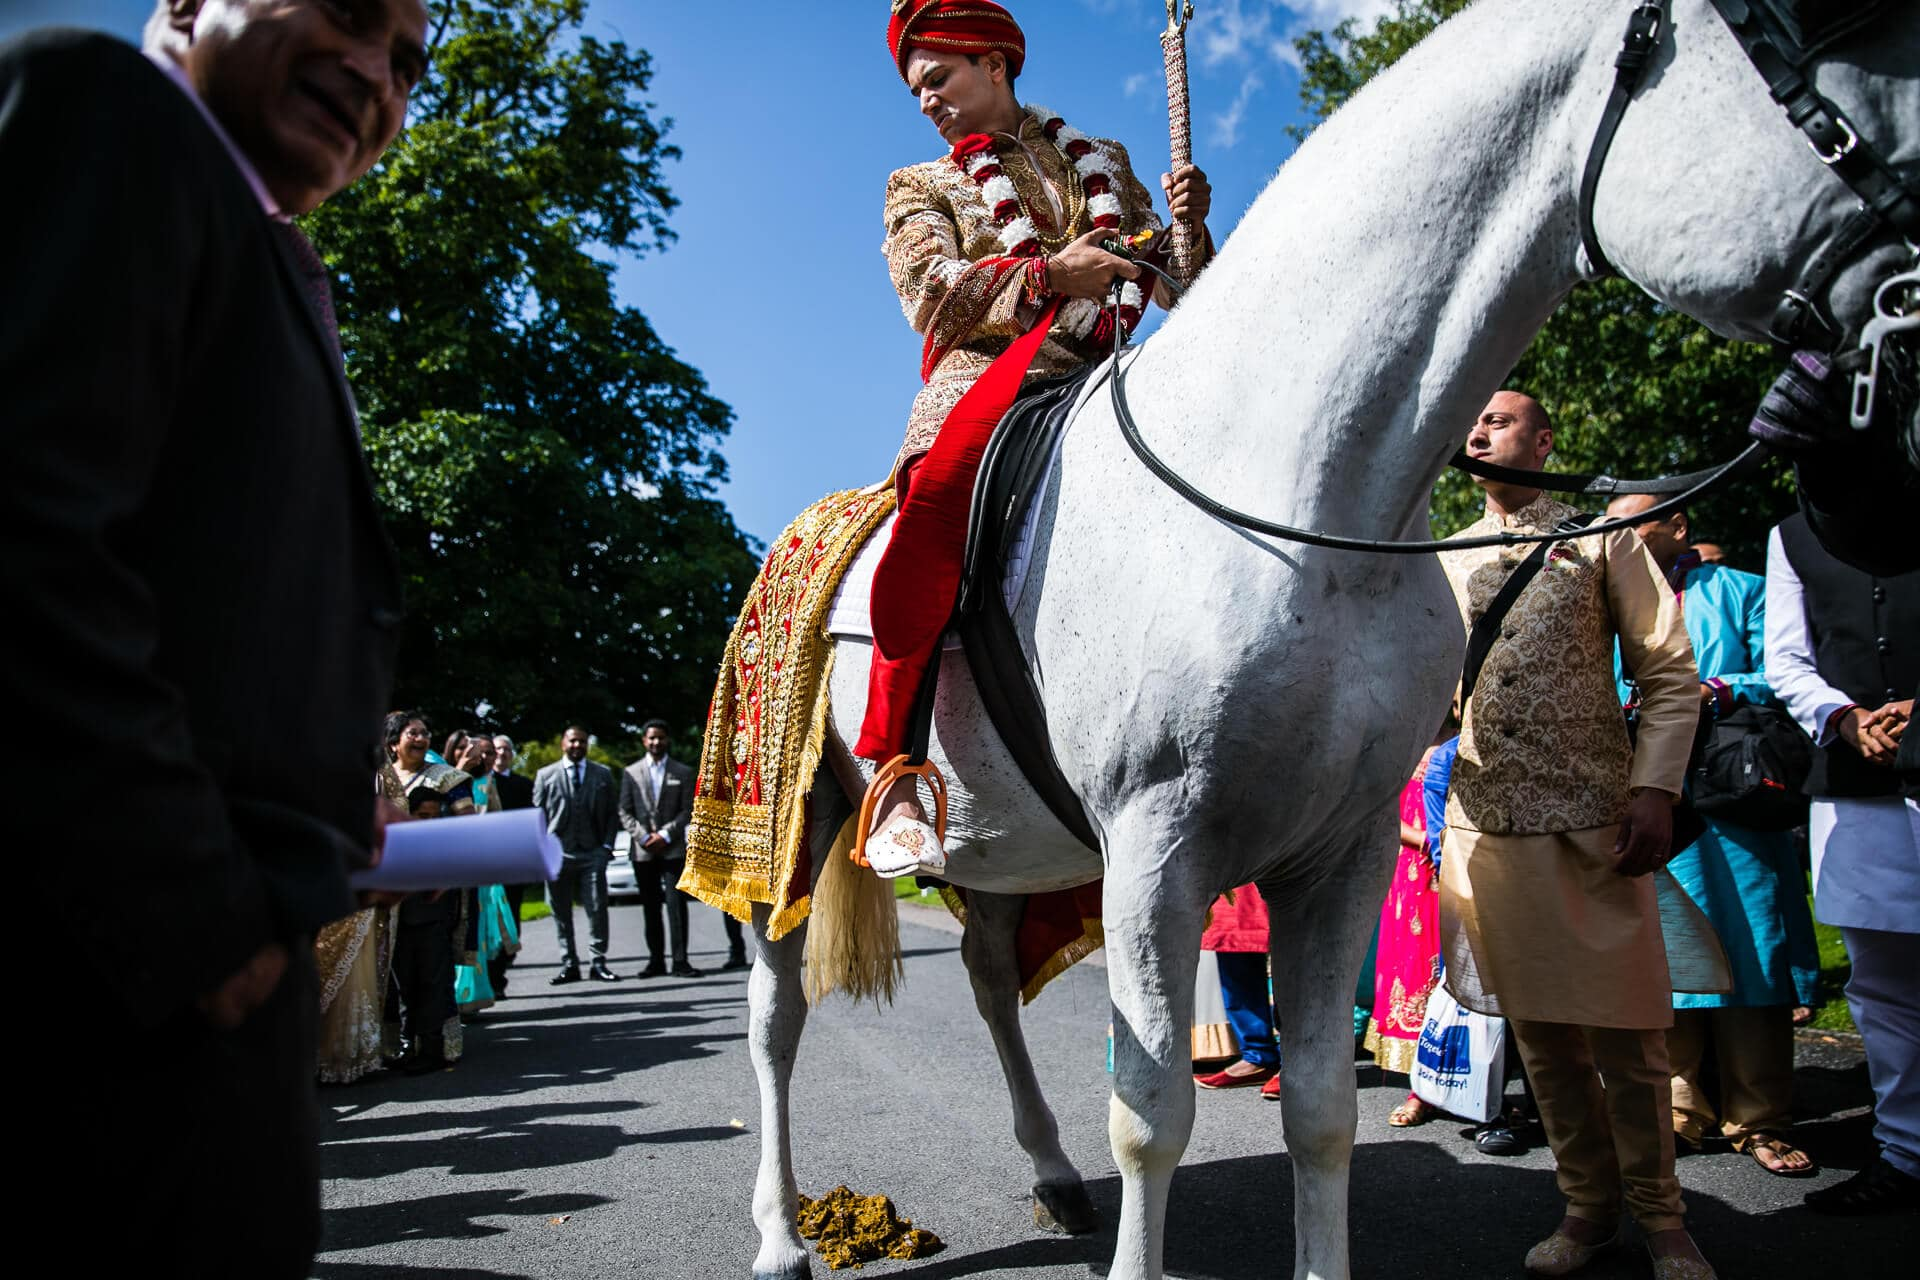 Groom on horse